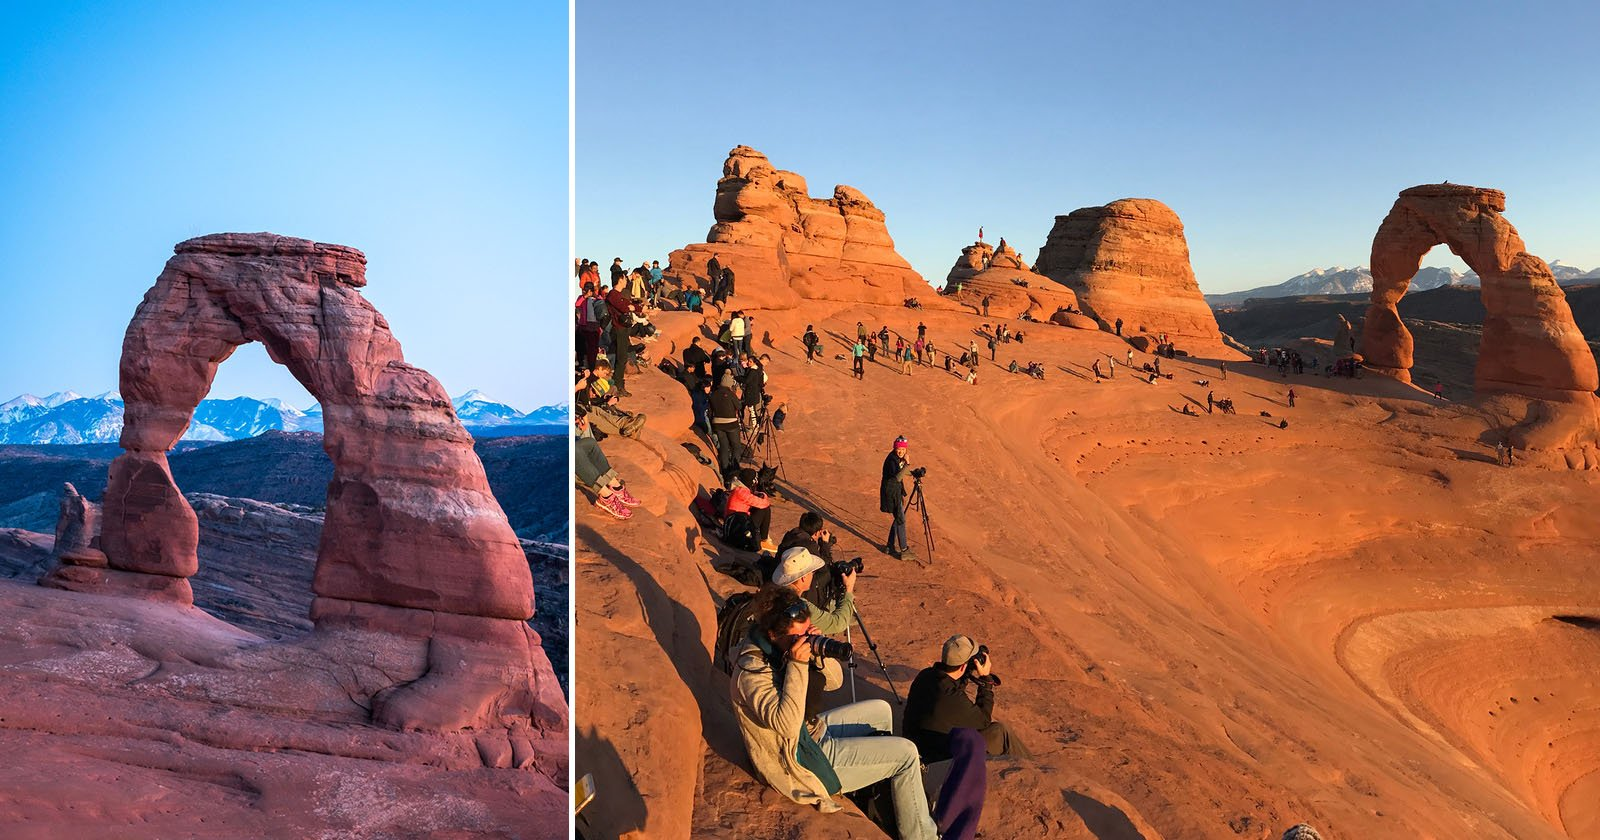 The Reality Behind Photos of National Park Landmarks